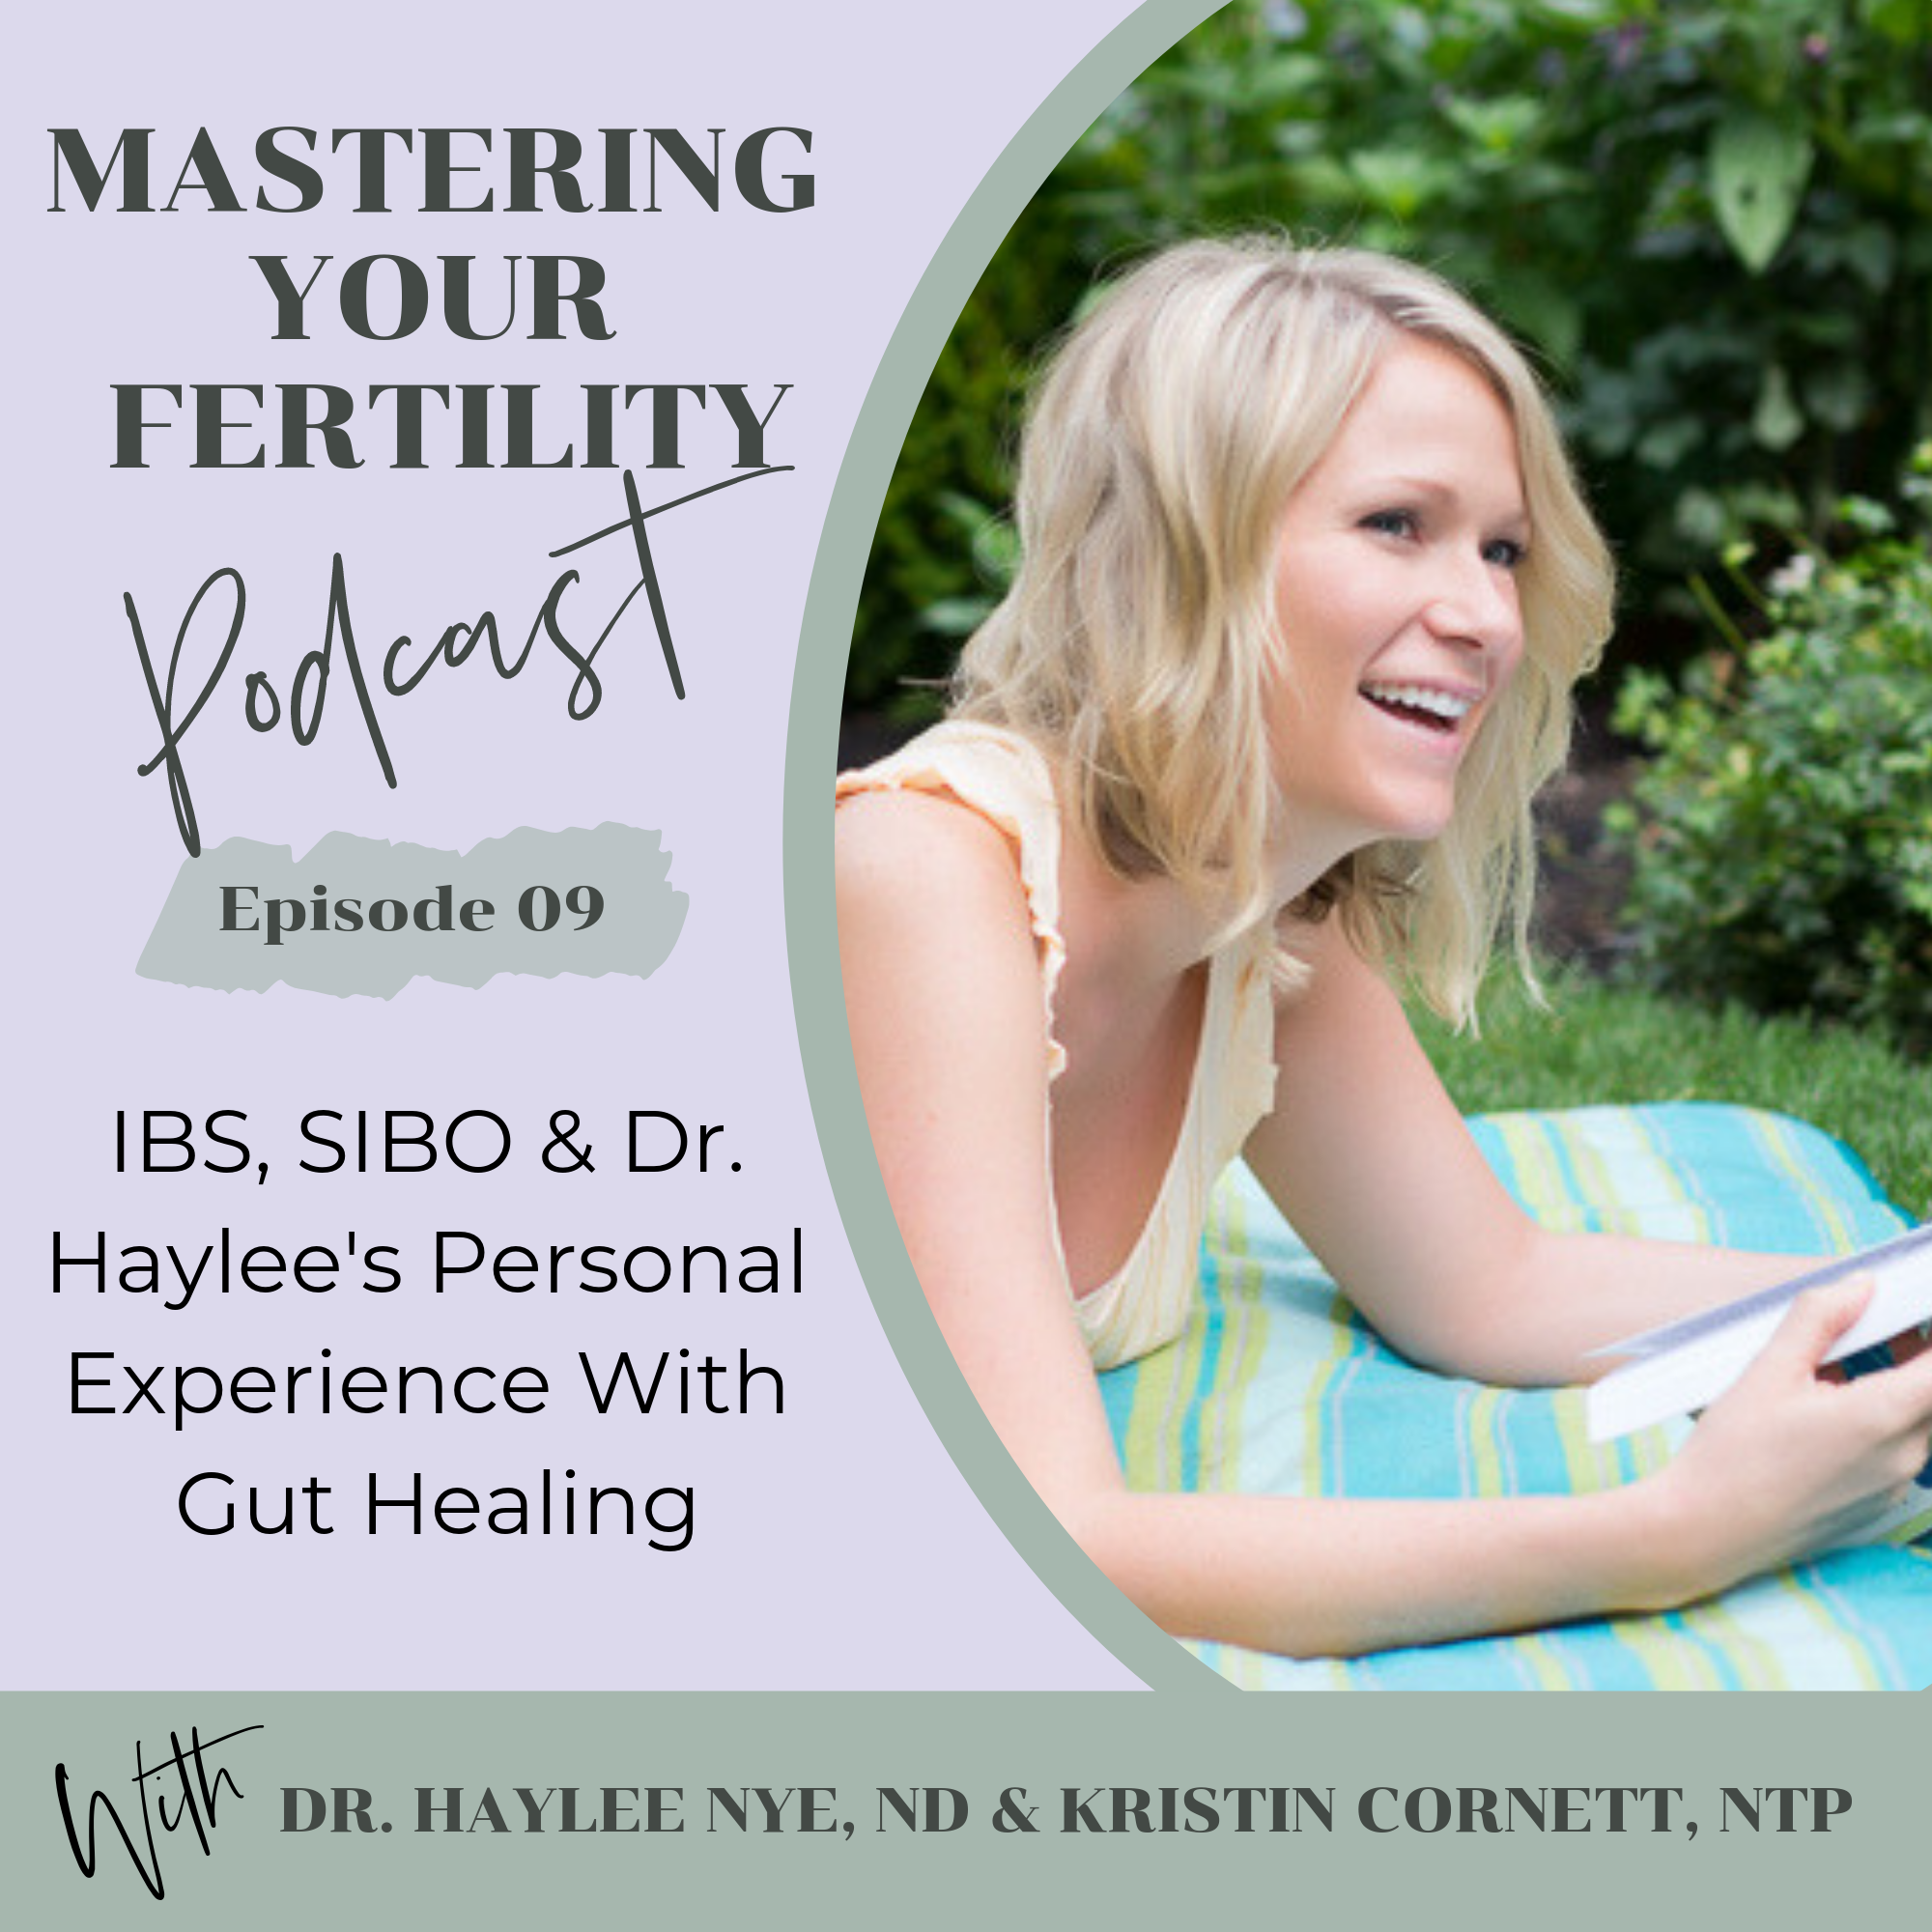 Mastering Your Fertility Podcast IBS SIBO Dr Haylee's Personal Gut Healing.png